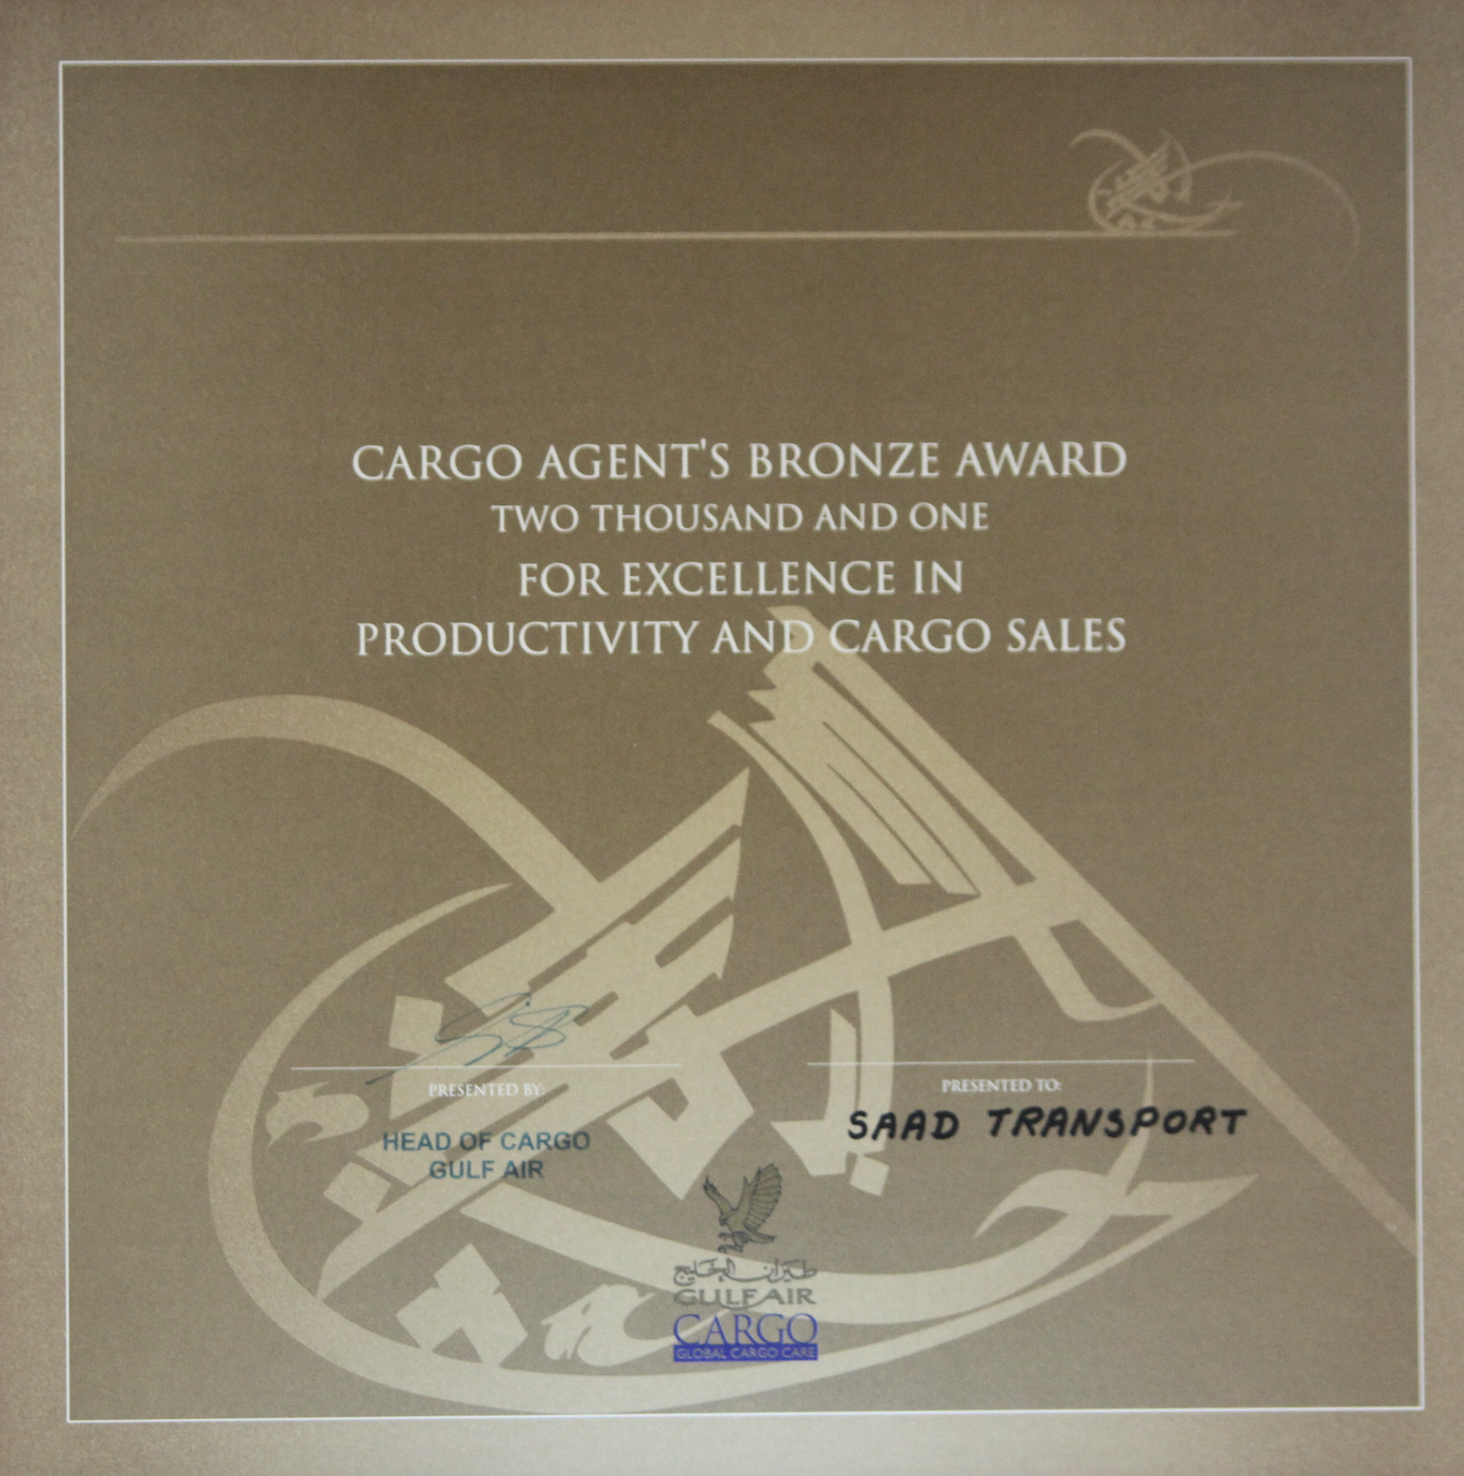 Excellence in Productivity and Cargo Sales